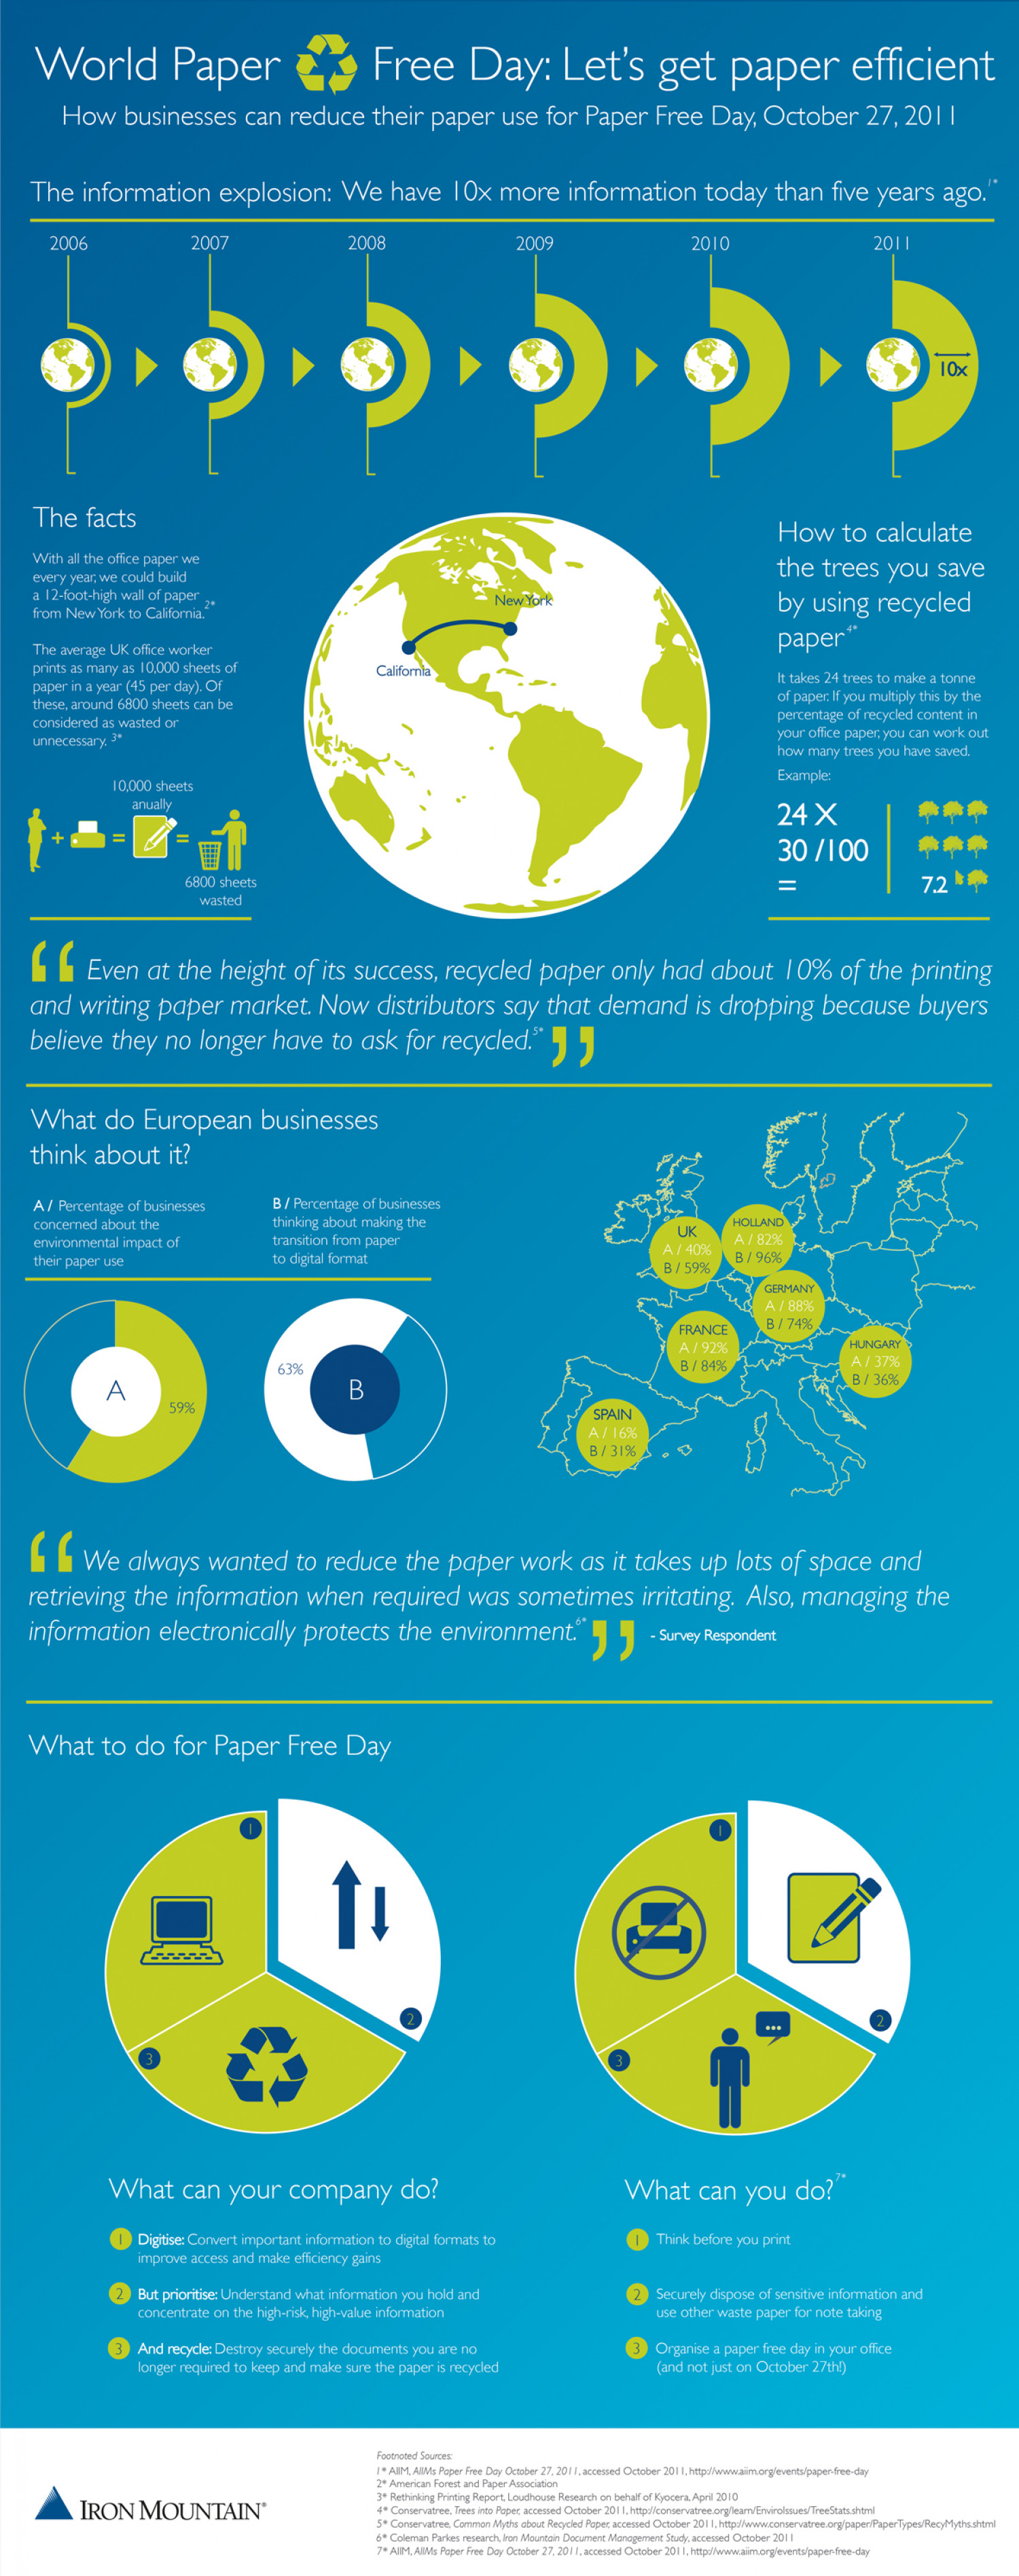 World Paper Free Day: Let's get paper efficient Infographic